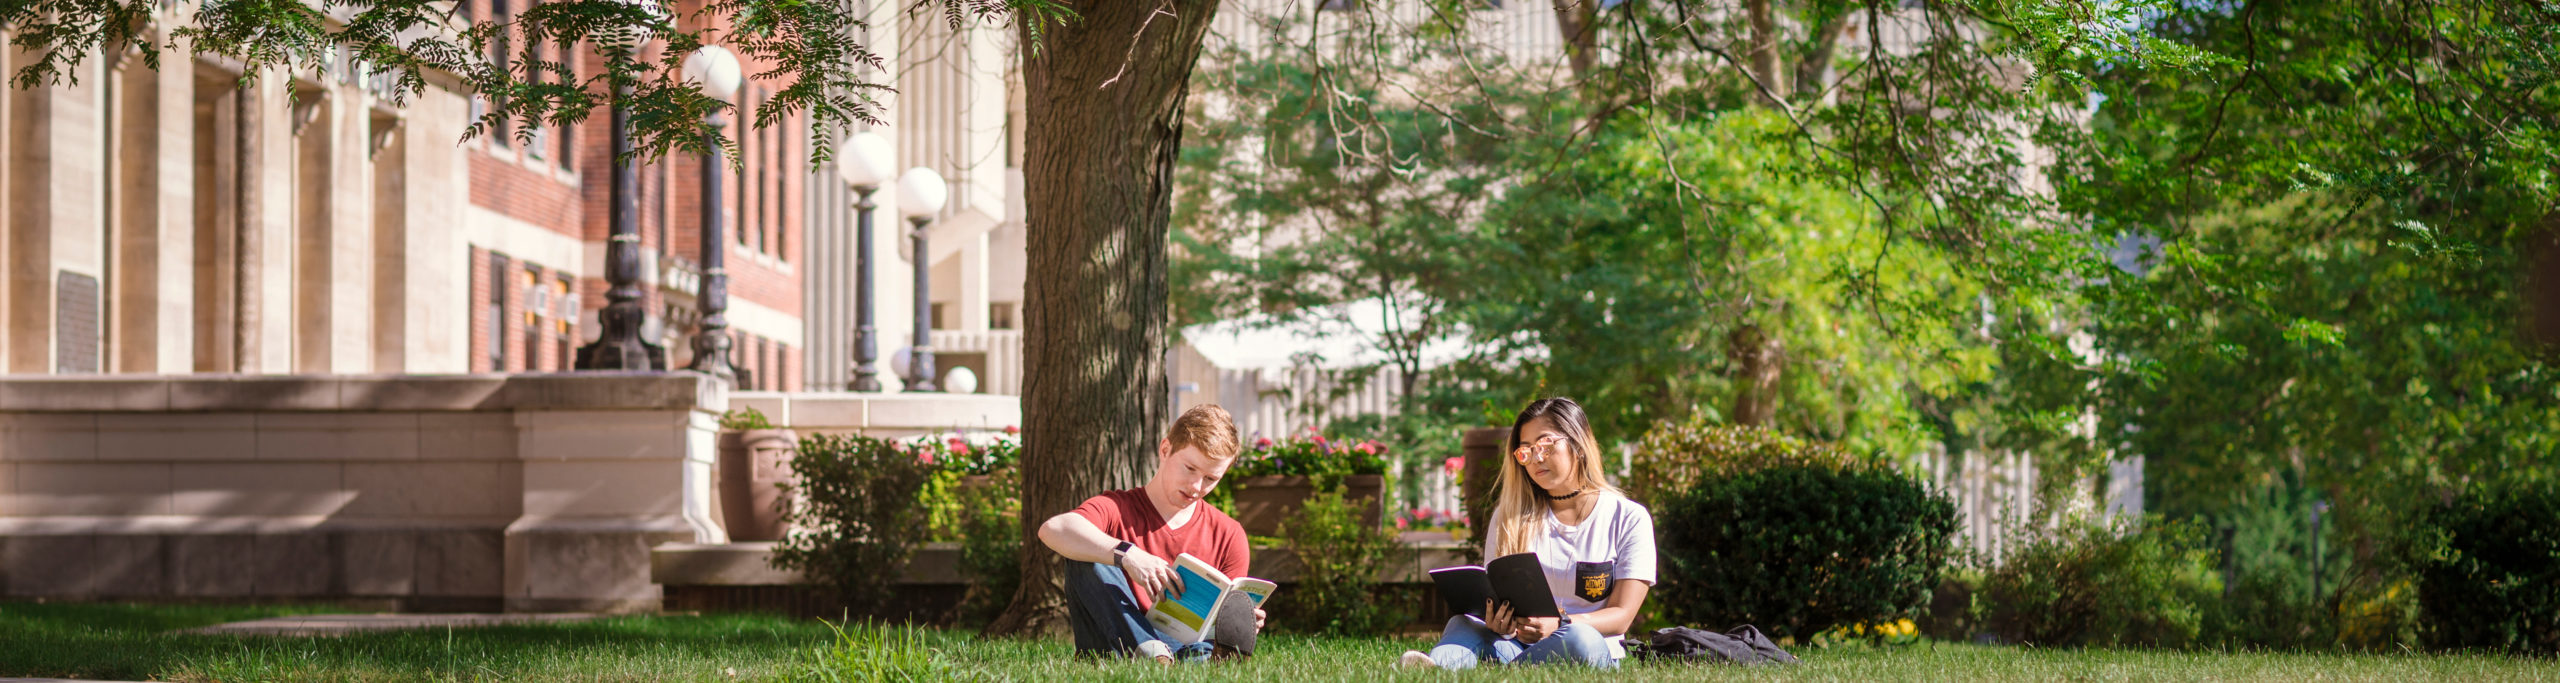 UWM students reading books outside